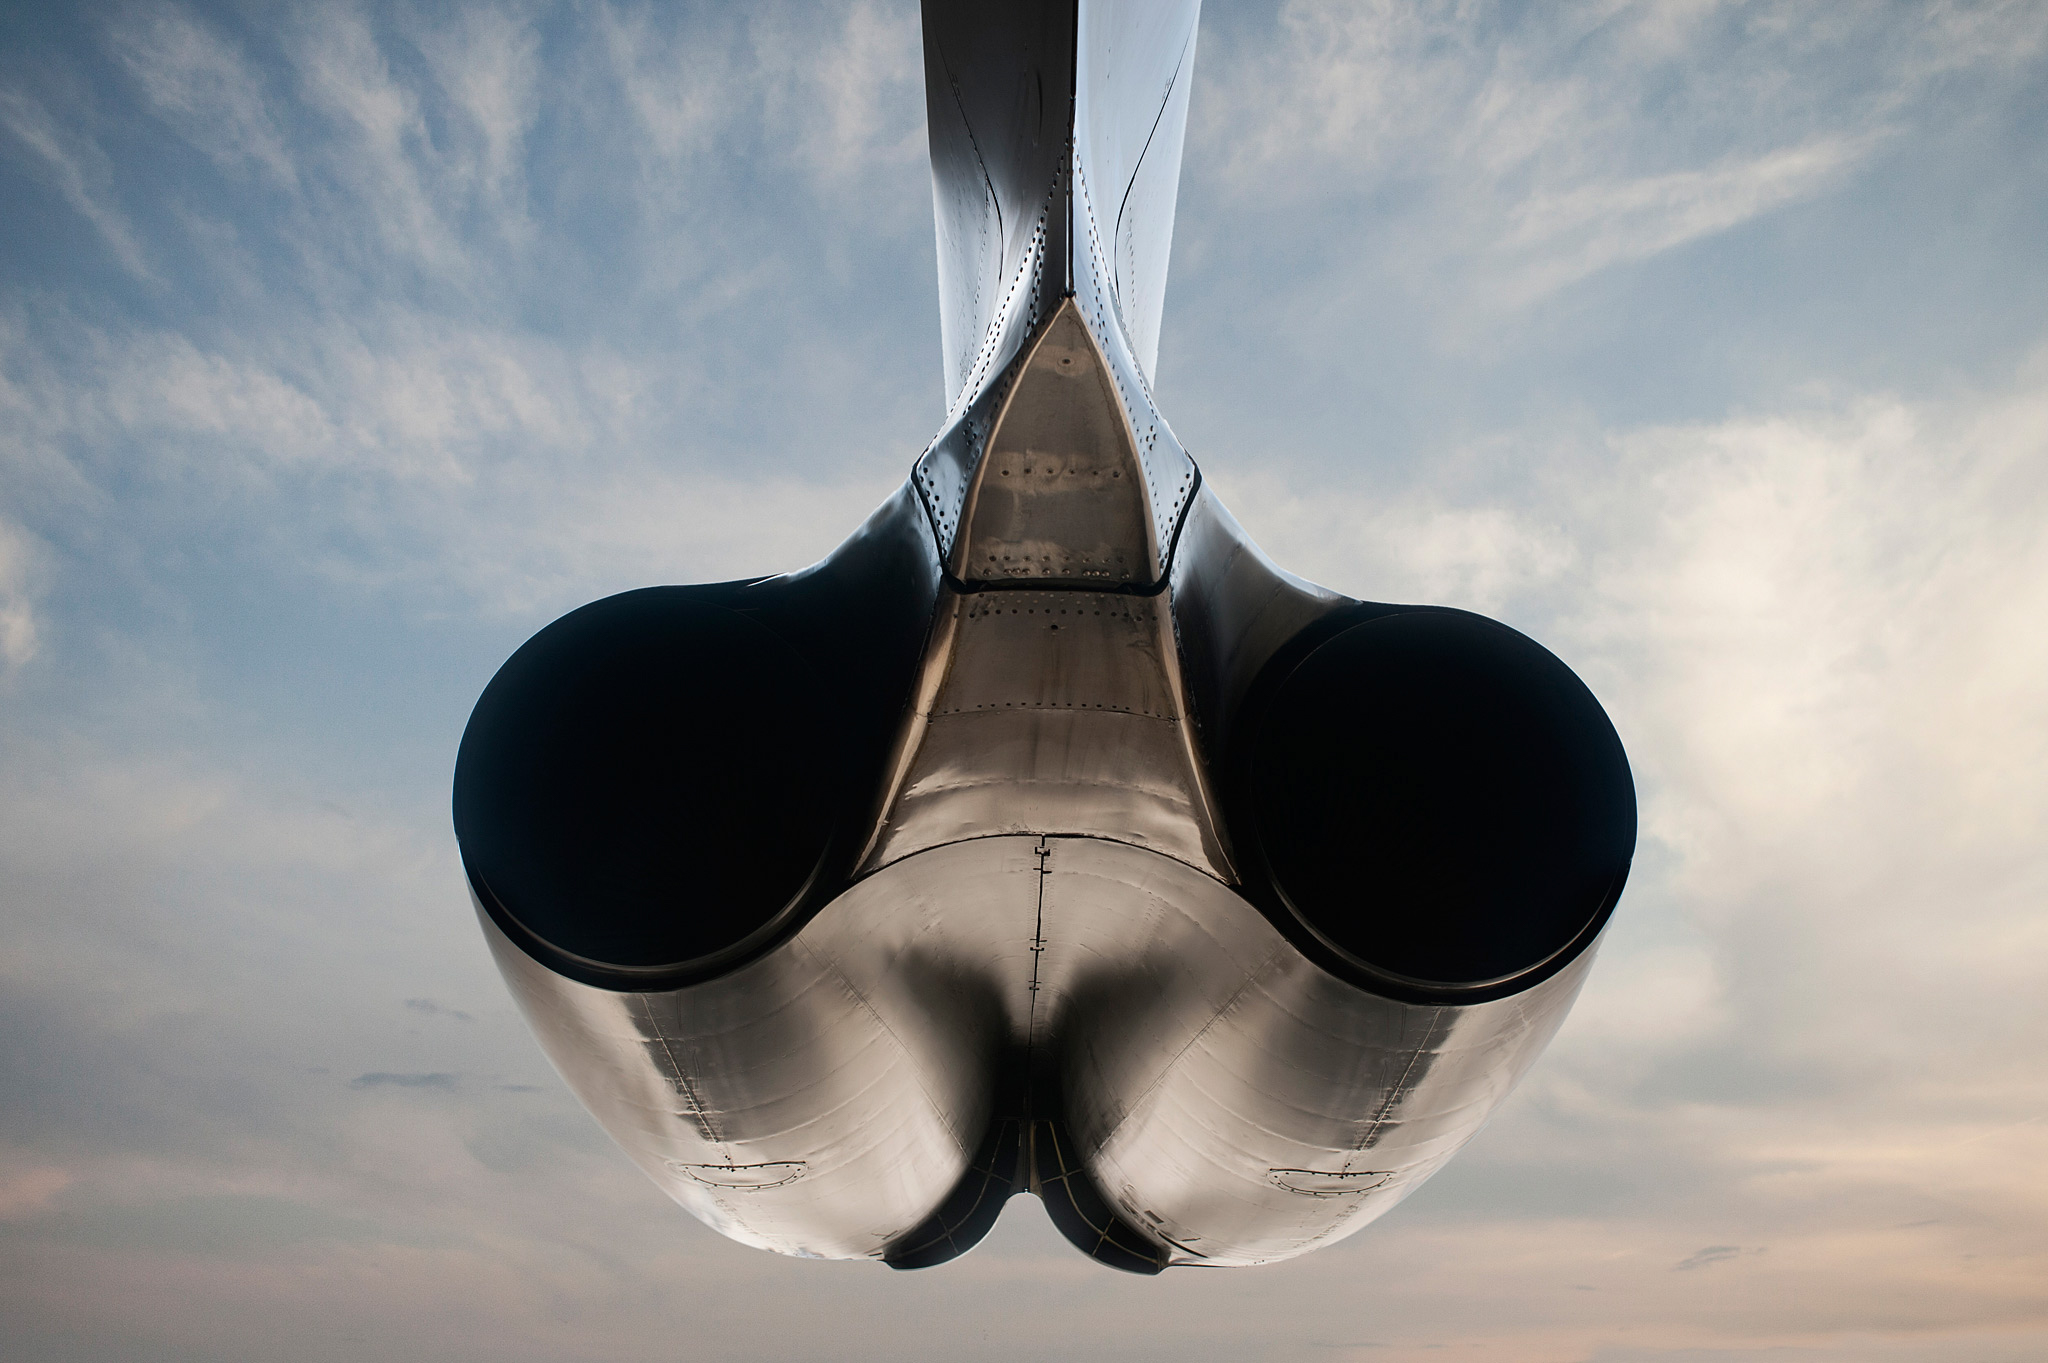 B-52 Engine, rear view